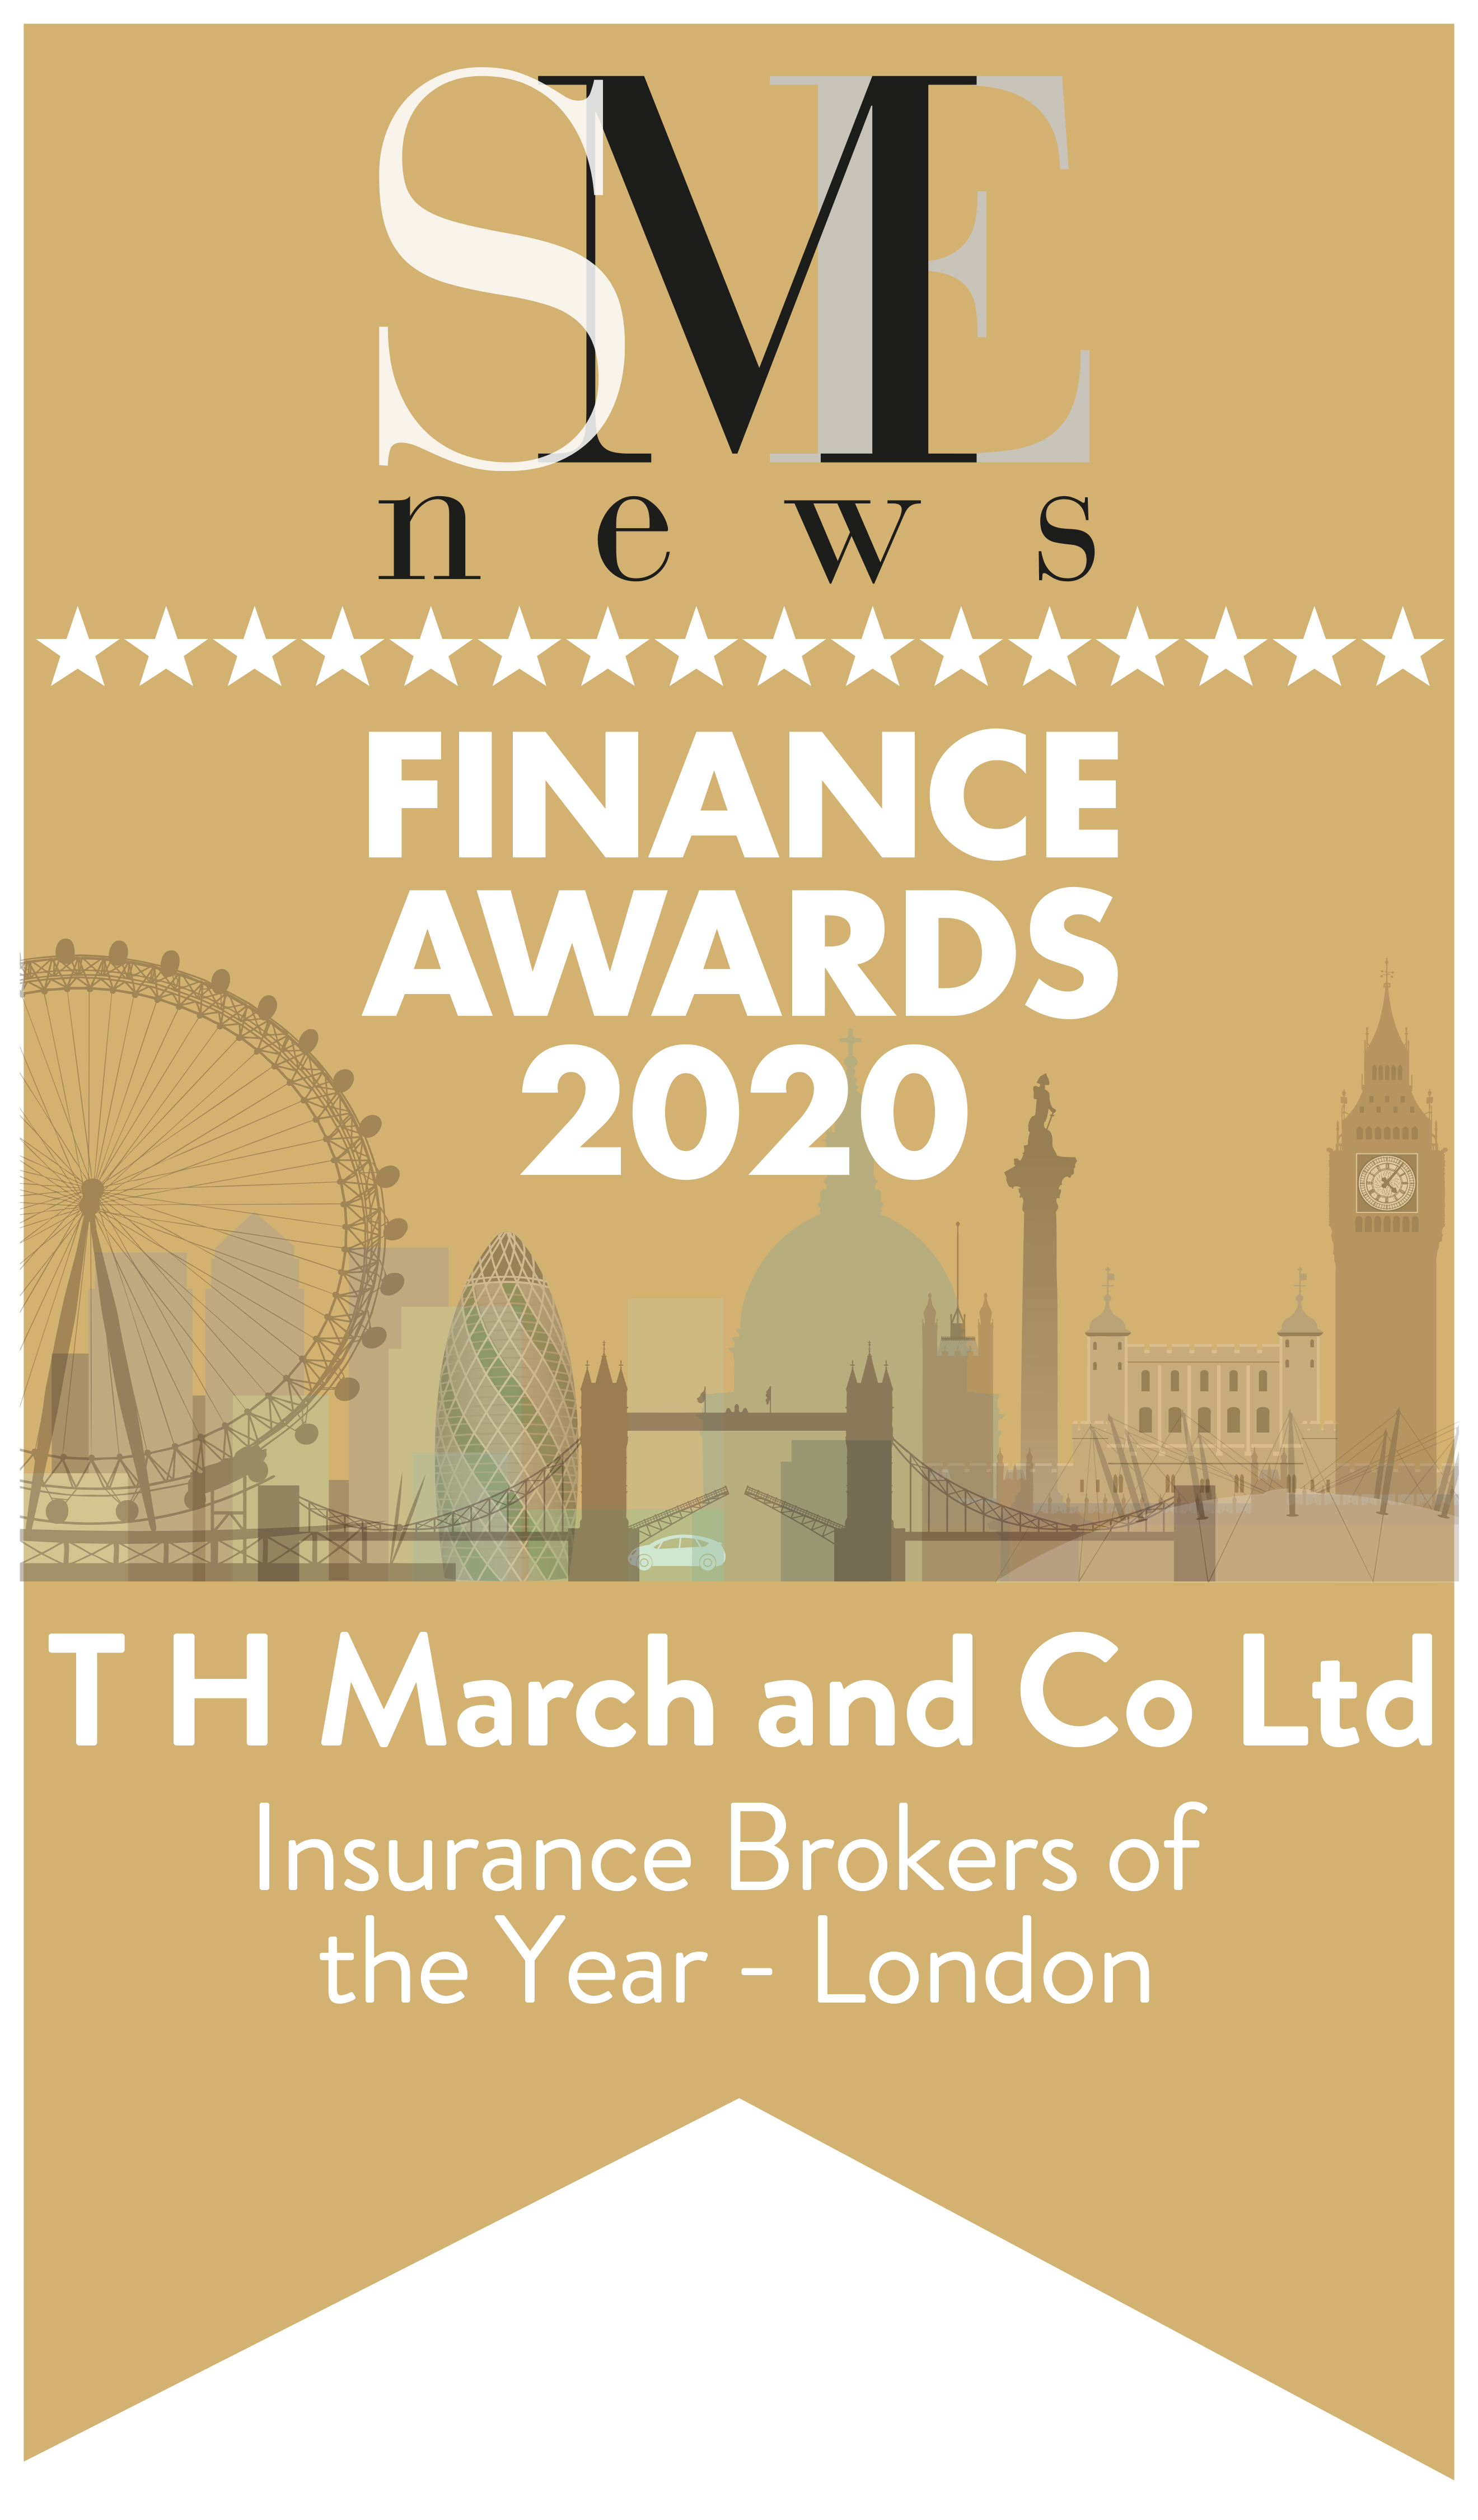 SME News Finance Awards 2020 - Insurance Brokers of the Year - London